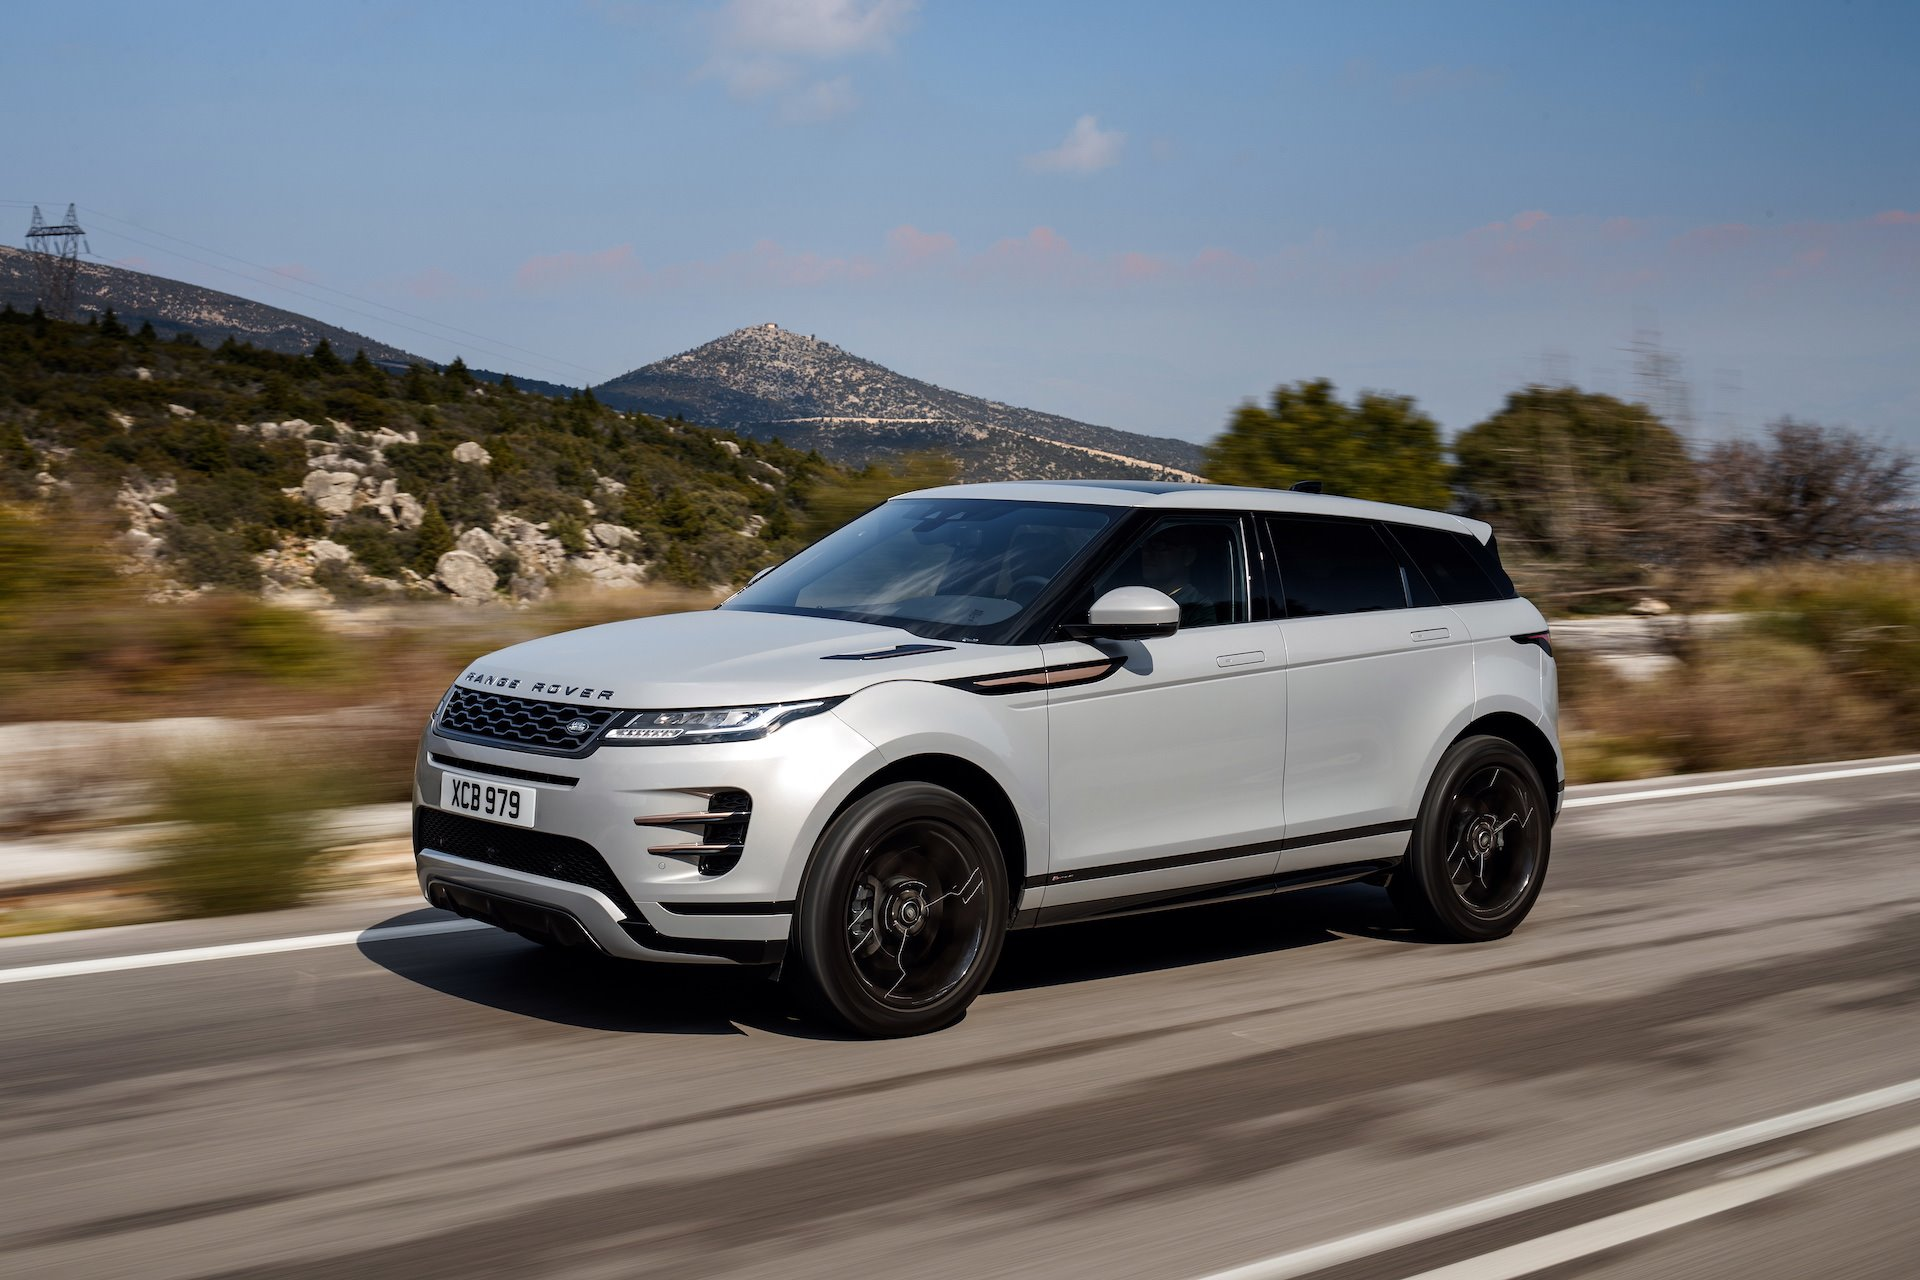 New 2020 Land Rover-Range Rover Evoque Range Rover Evoque R-Dynamic HSE for sale $55,800 at M and V Leasing in Brooklyn NY 11223 1